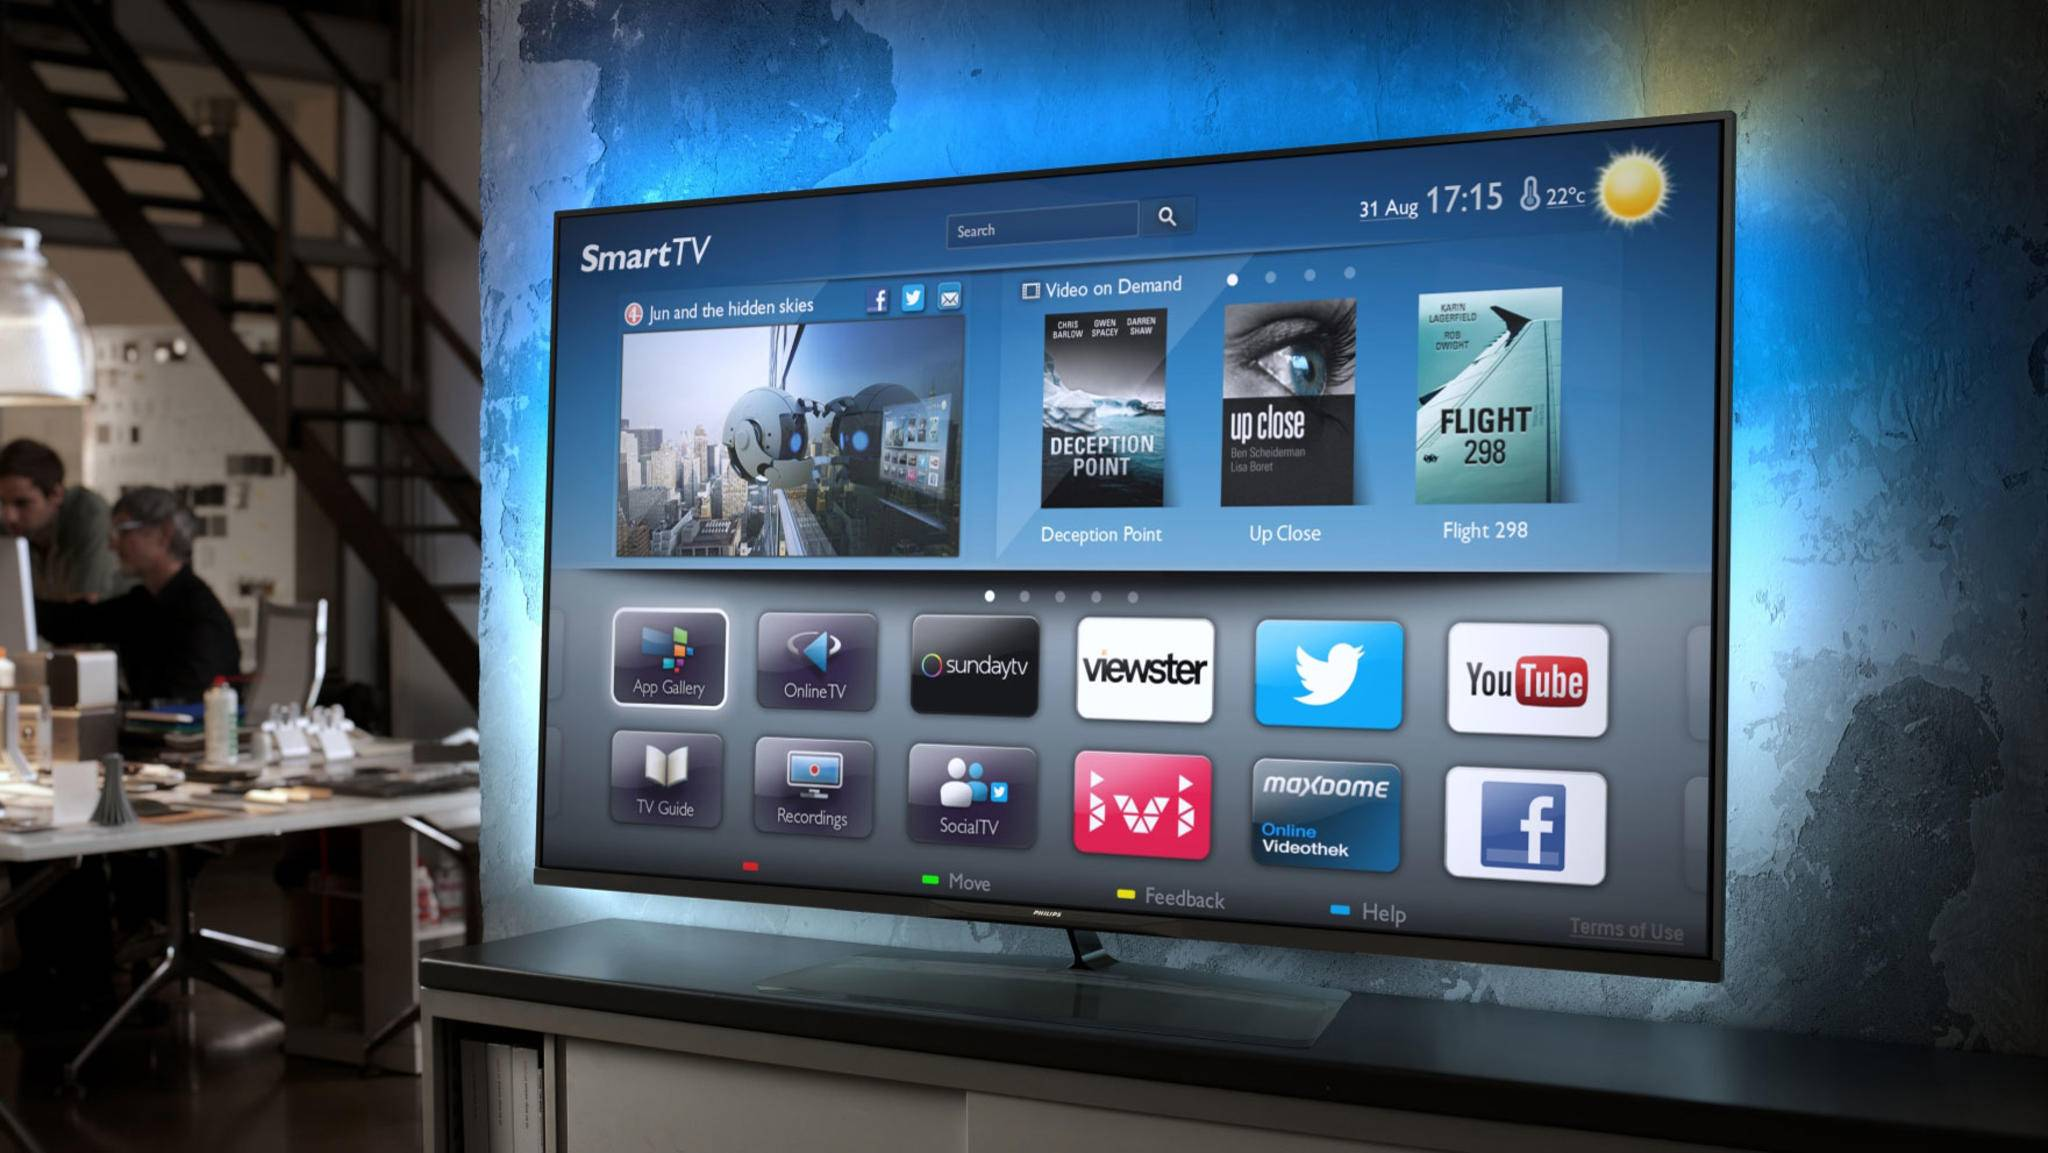 how to download apps on sony smart tv